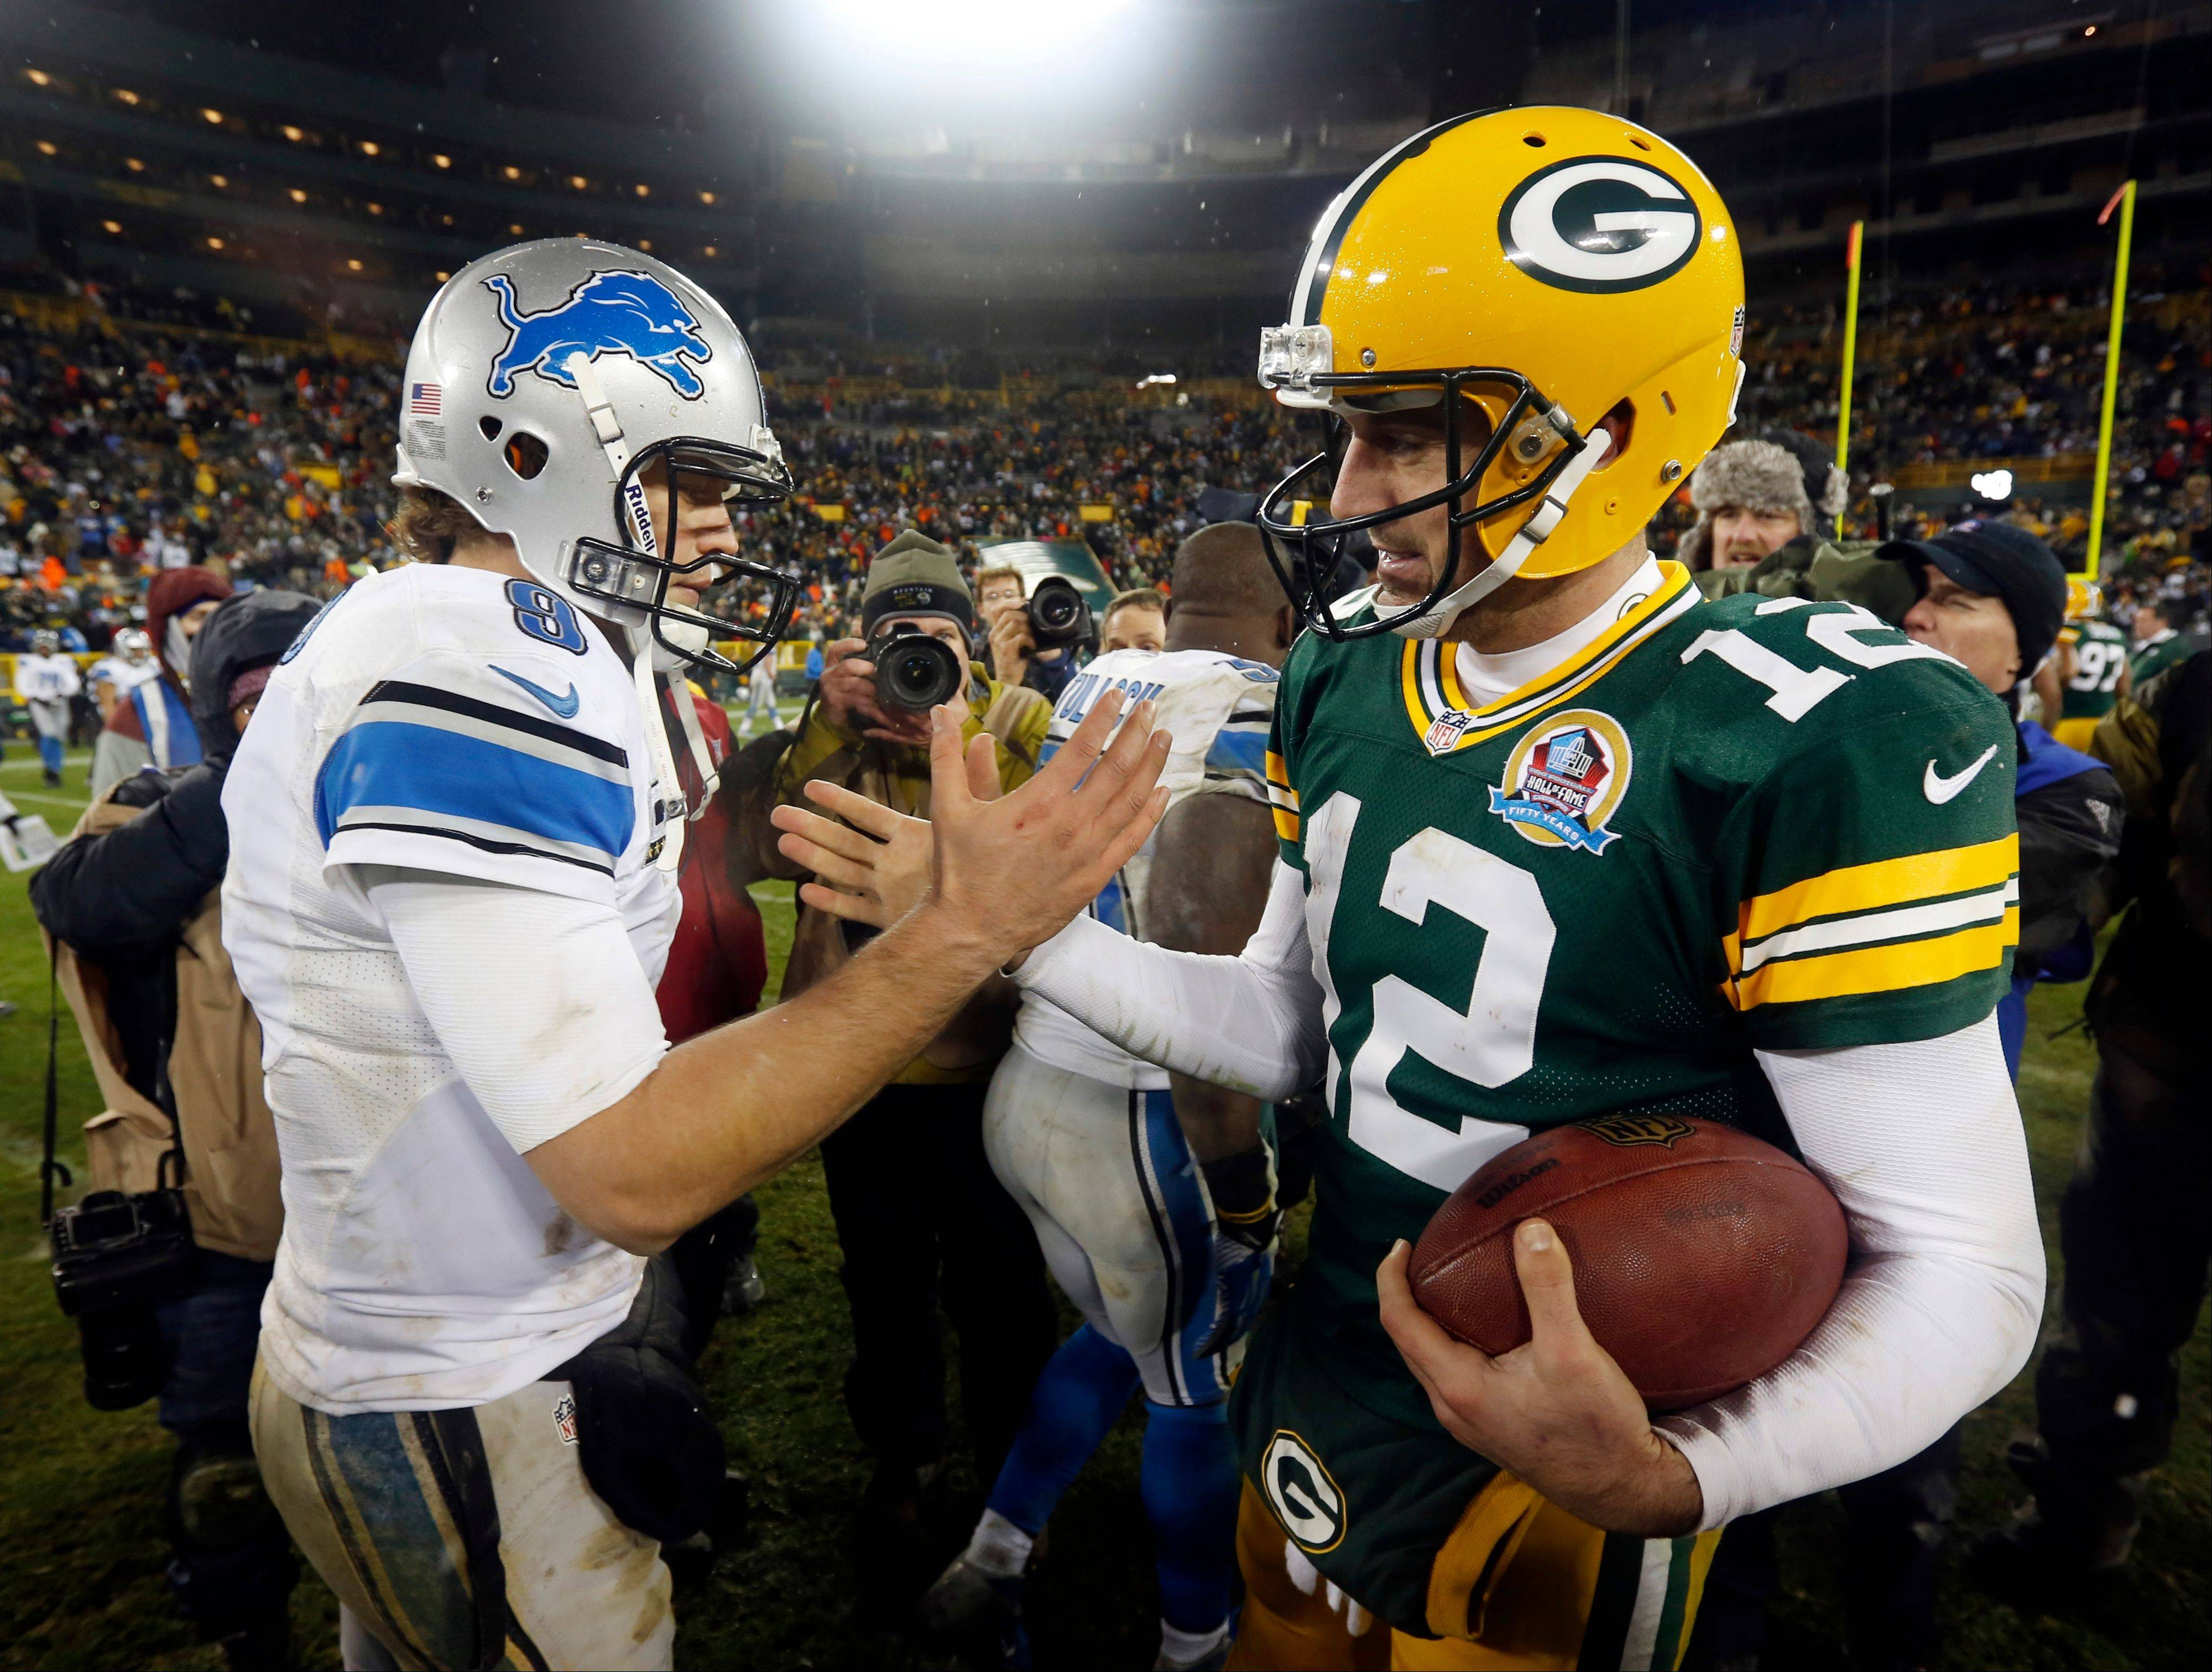 Green Bay Packers quarterback Aaron Rodgers shakes hands with Detroit Lions quarterback Matthew Stafford after the Packers' victory Sunday at Lambeau Field.